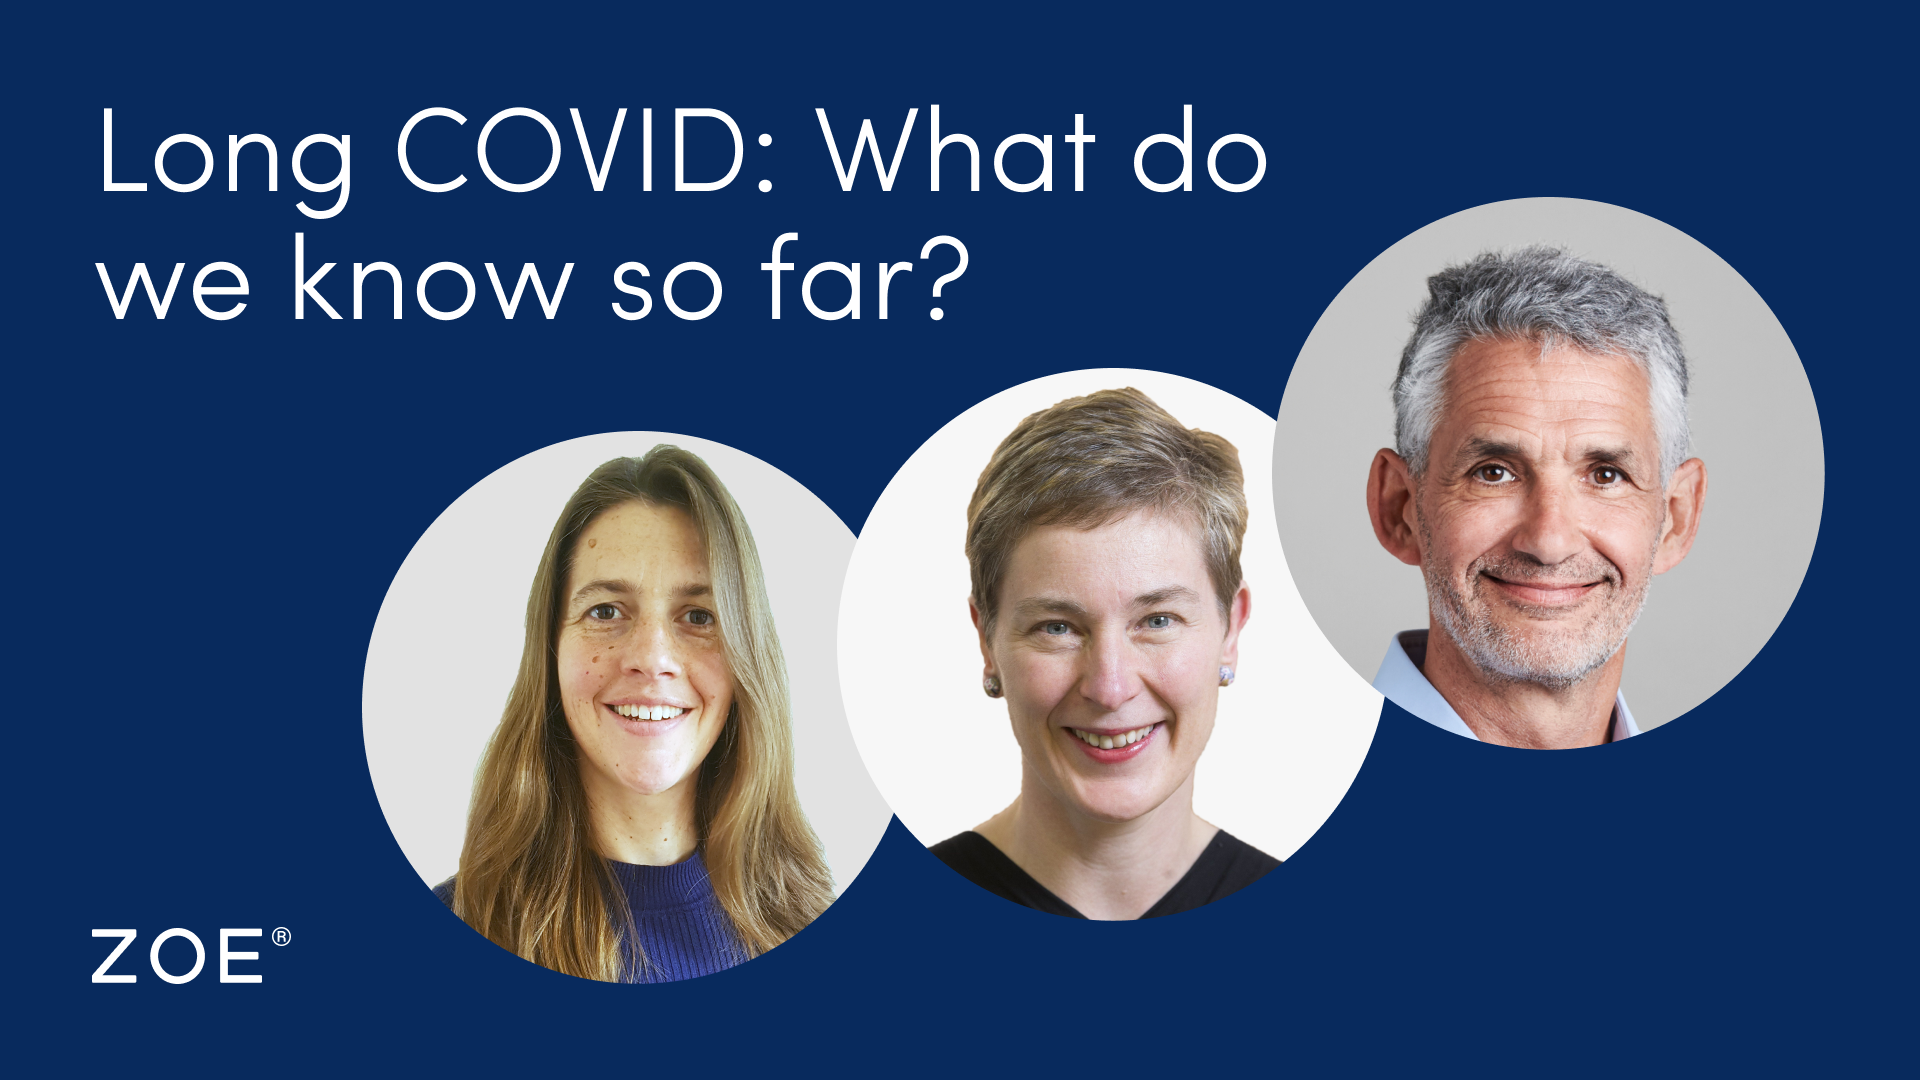 Long COVID: What do we know so far?